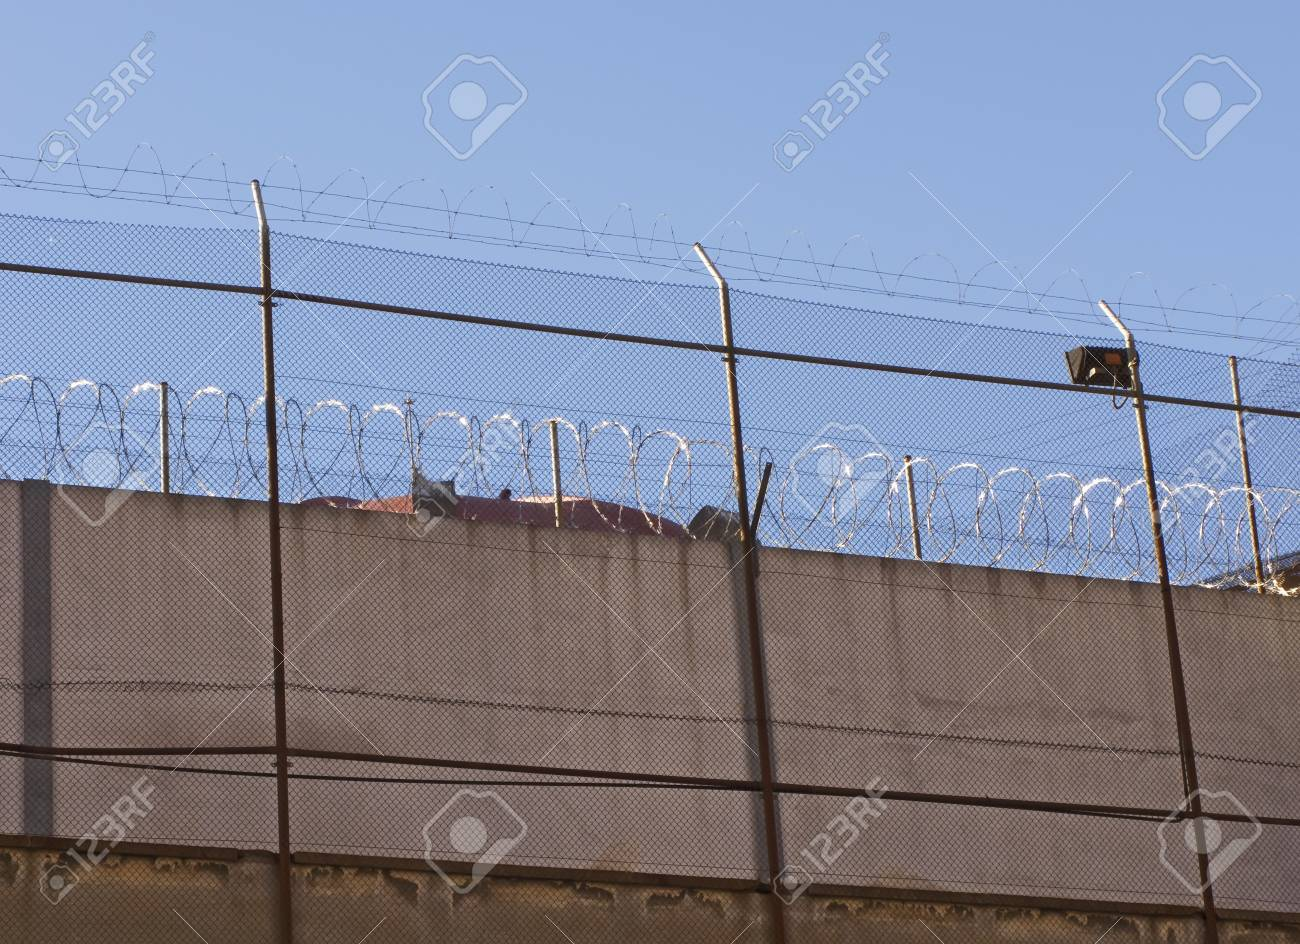 Barb wire into a prison wall, detail Stock Photo - 11739728